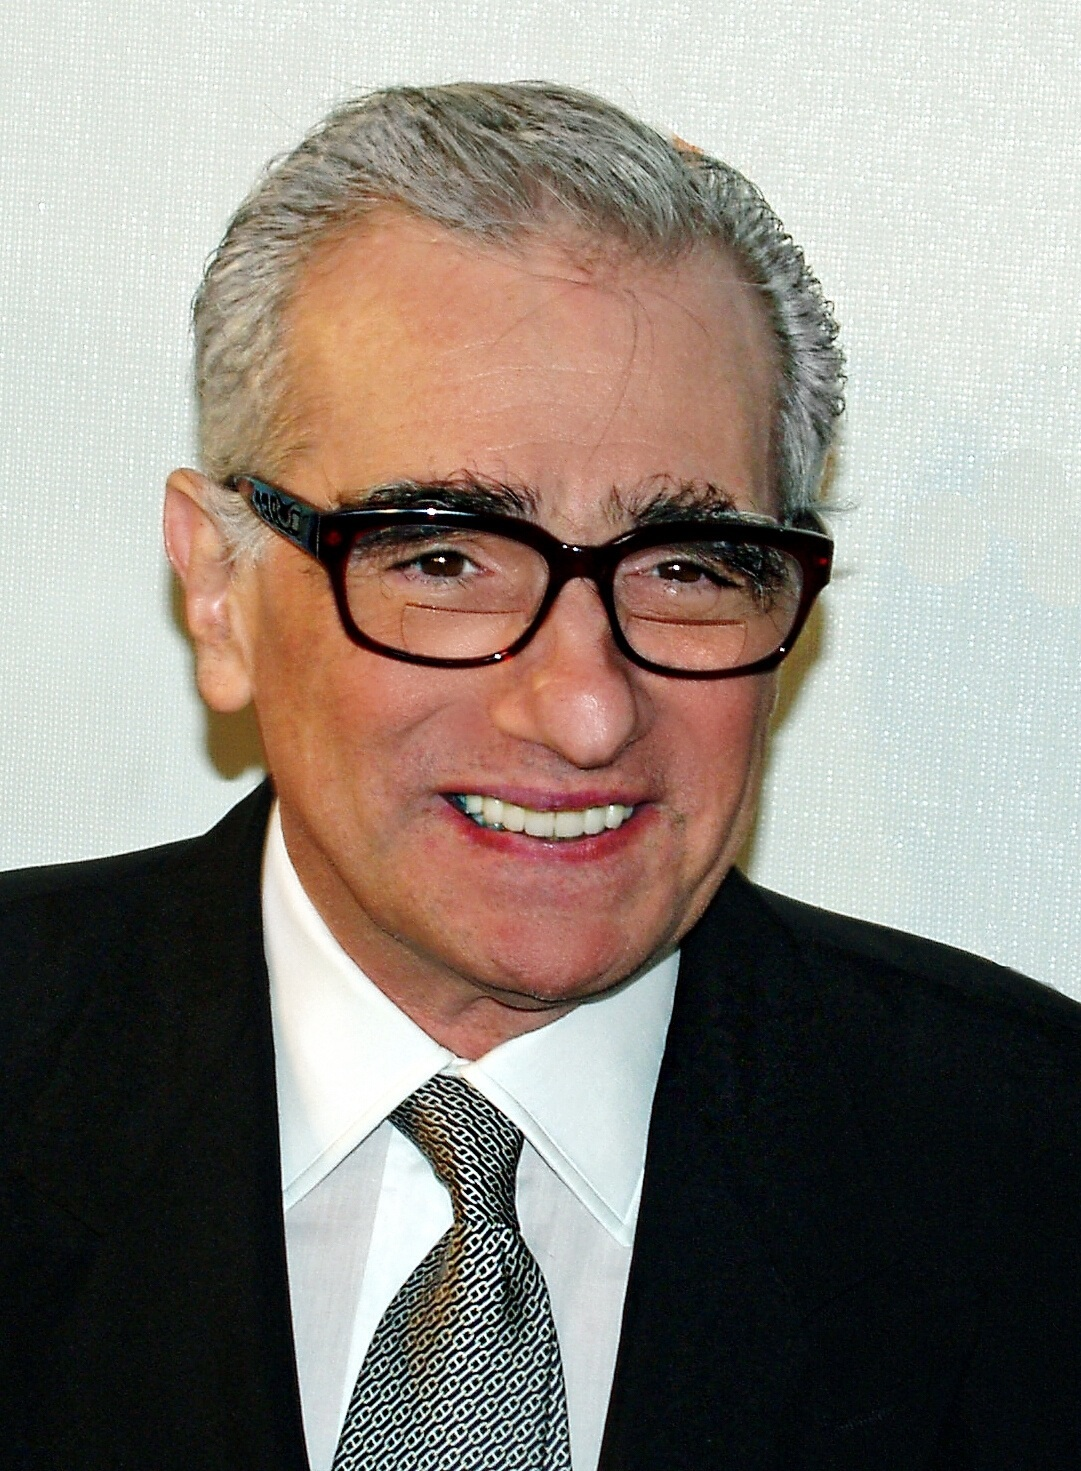 Martin Scorsese and Robert De Niro - Wikipedia